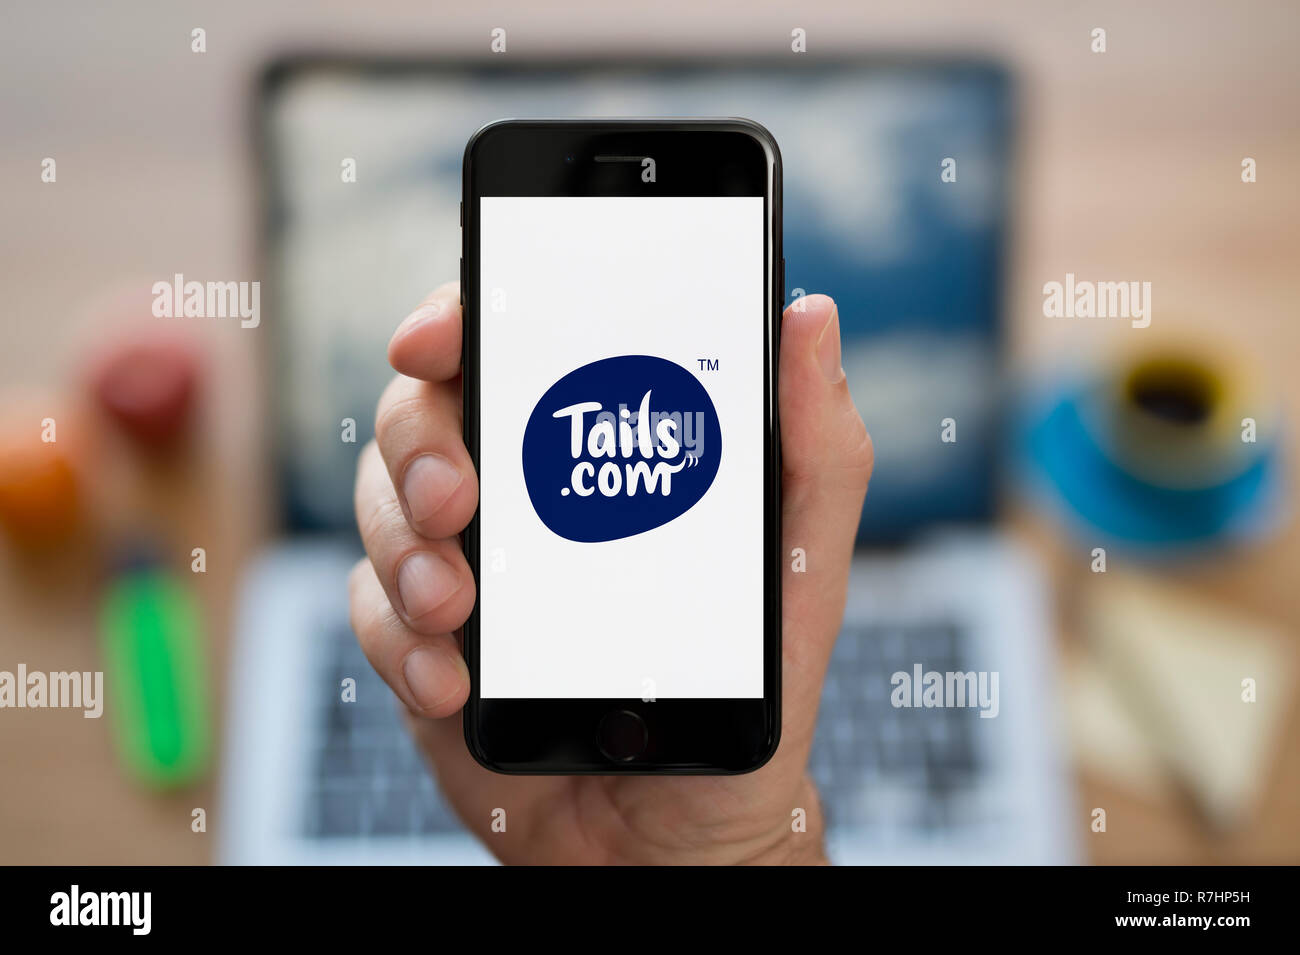 A man looks at his iPhone which displays the Tails logo (Editorial use only). - Stock Image